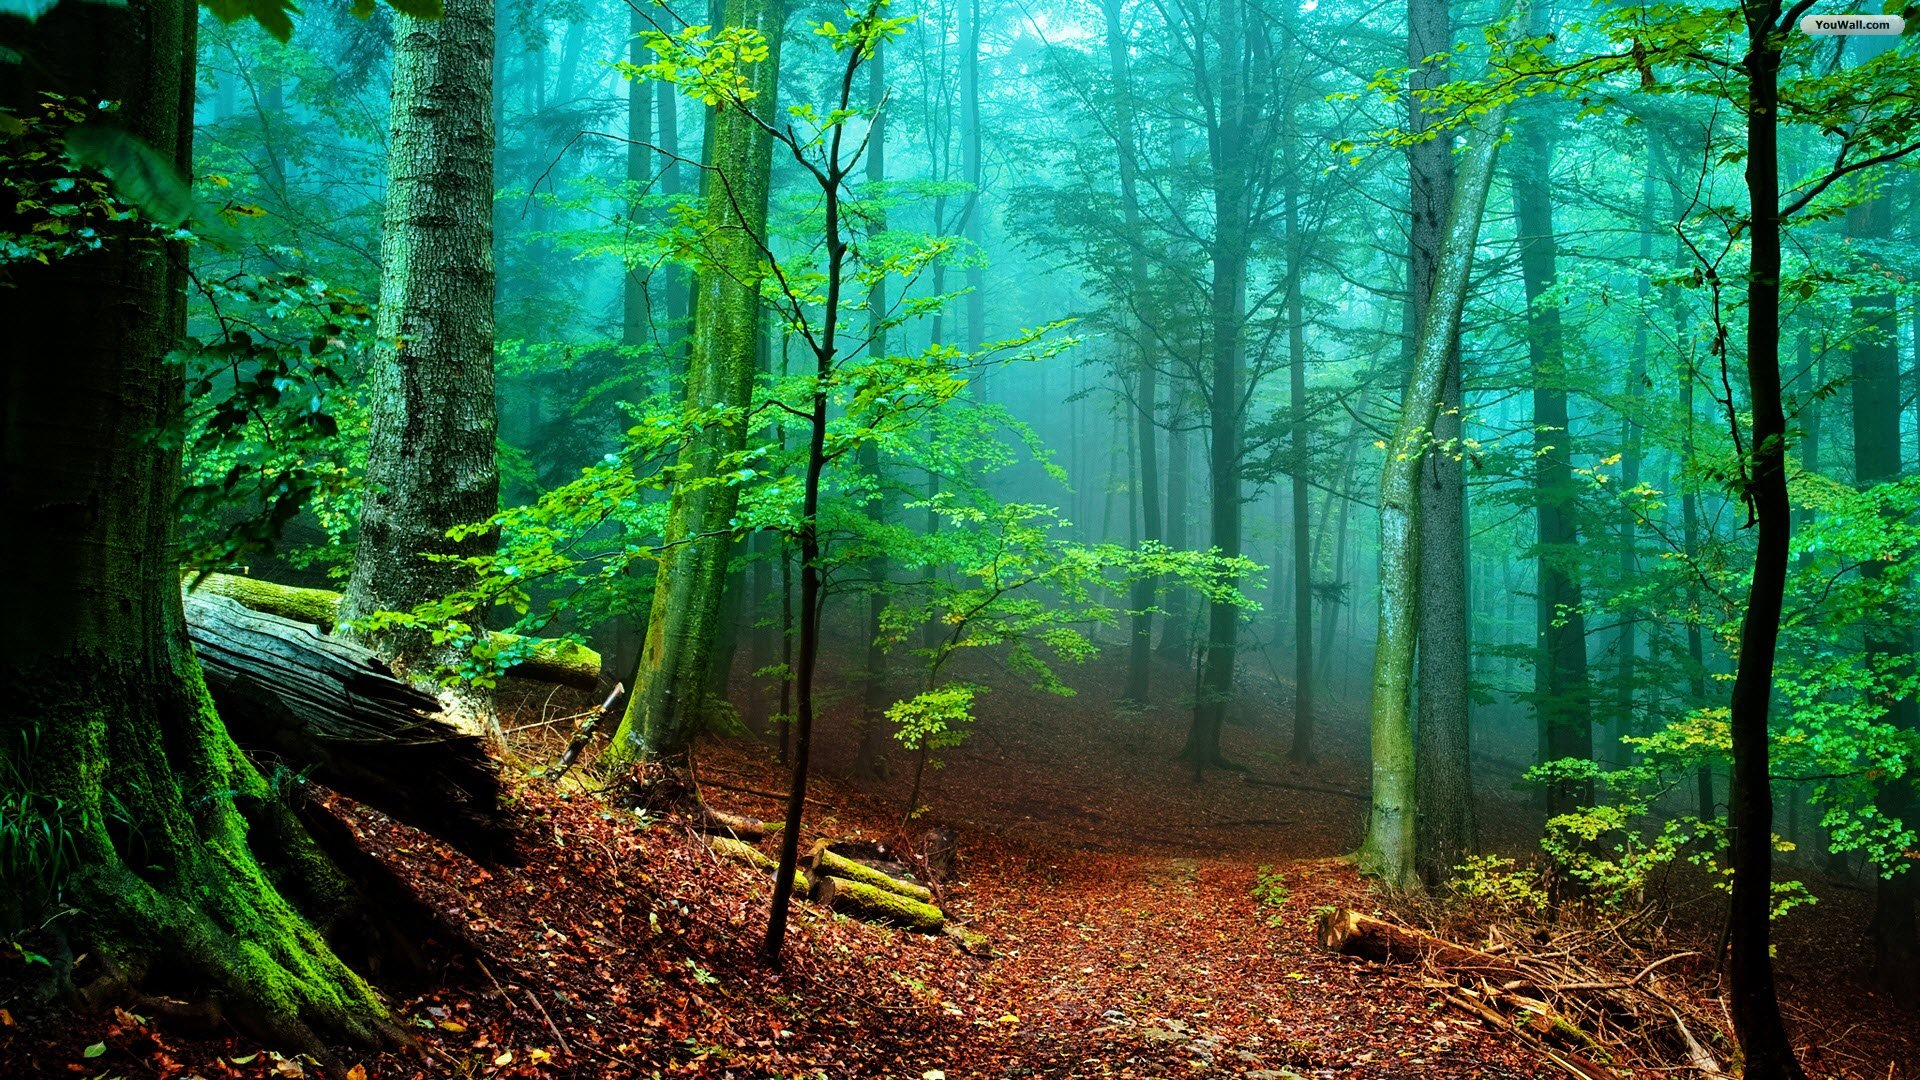 Forest Wallpapers, Forest Backgrounds for PC - HDQ Awesome Images